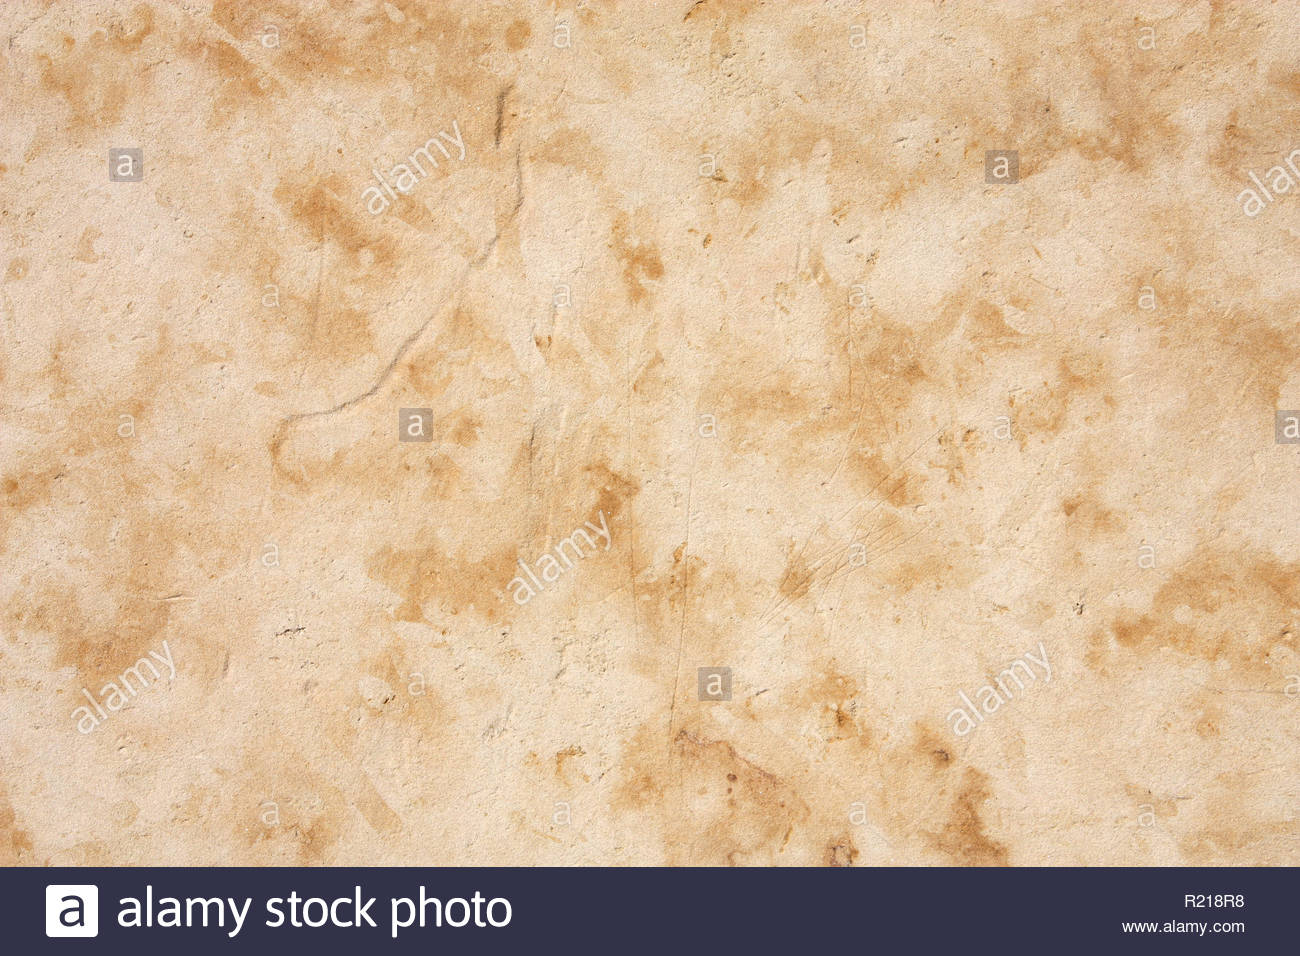 Grunge sandstone background texture Old stained wall Stock Photo 1300x956